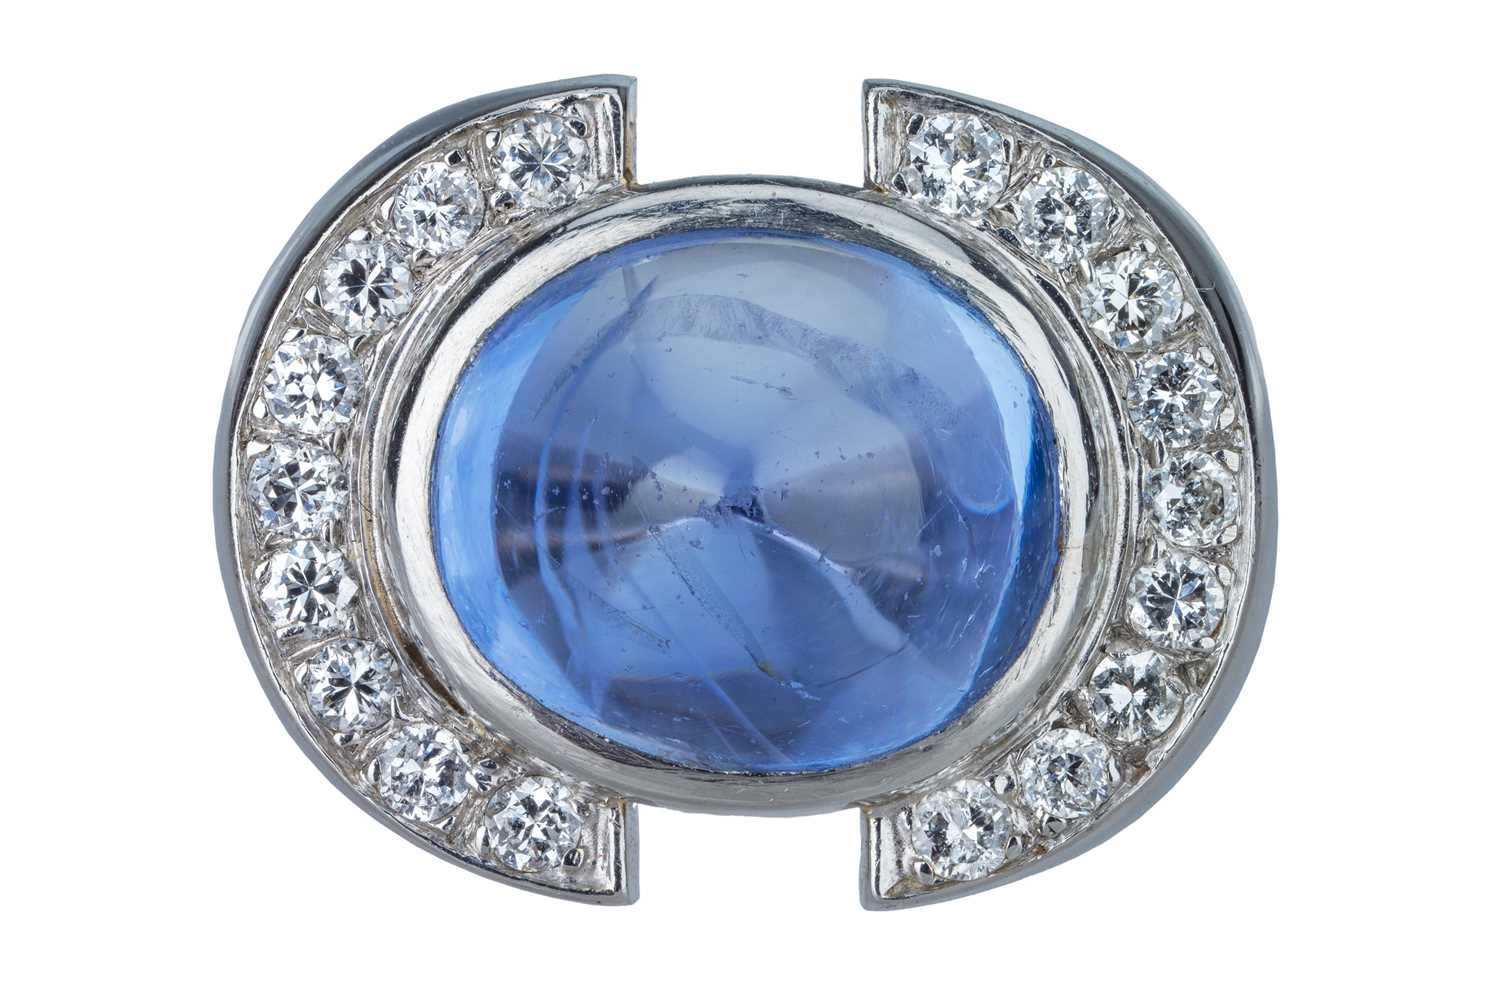 Lot 5 - A French Art Deco cabochon sapphire and diamond cocktail ring.